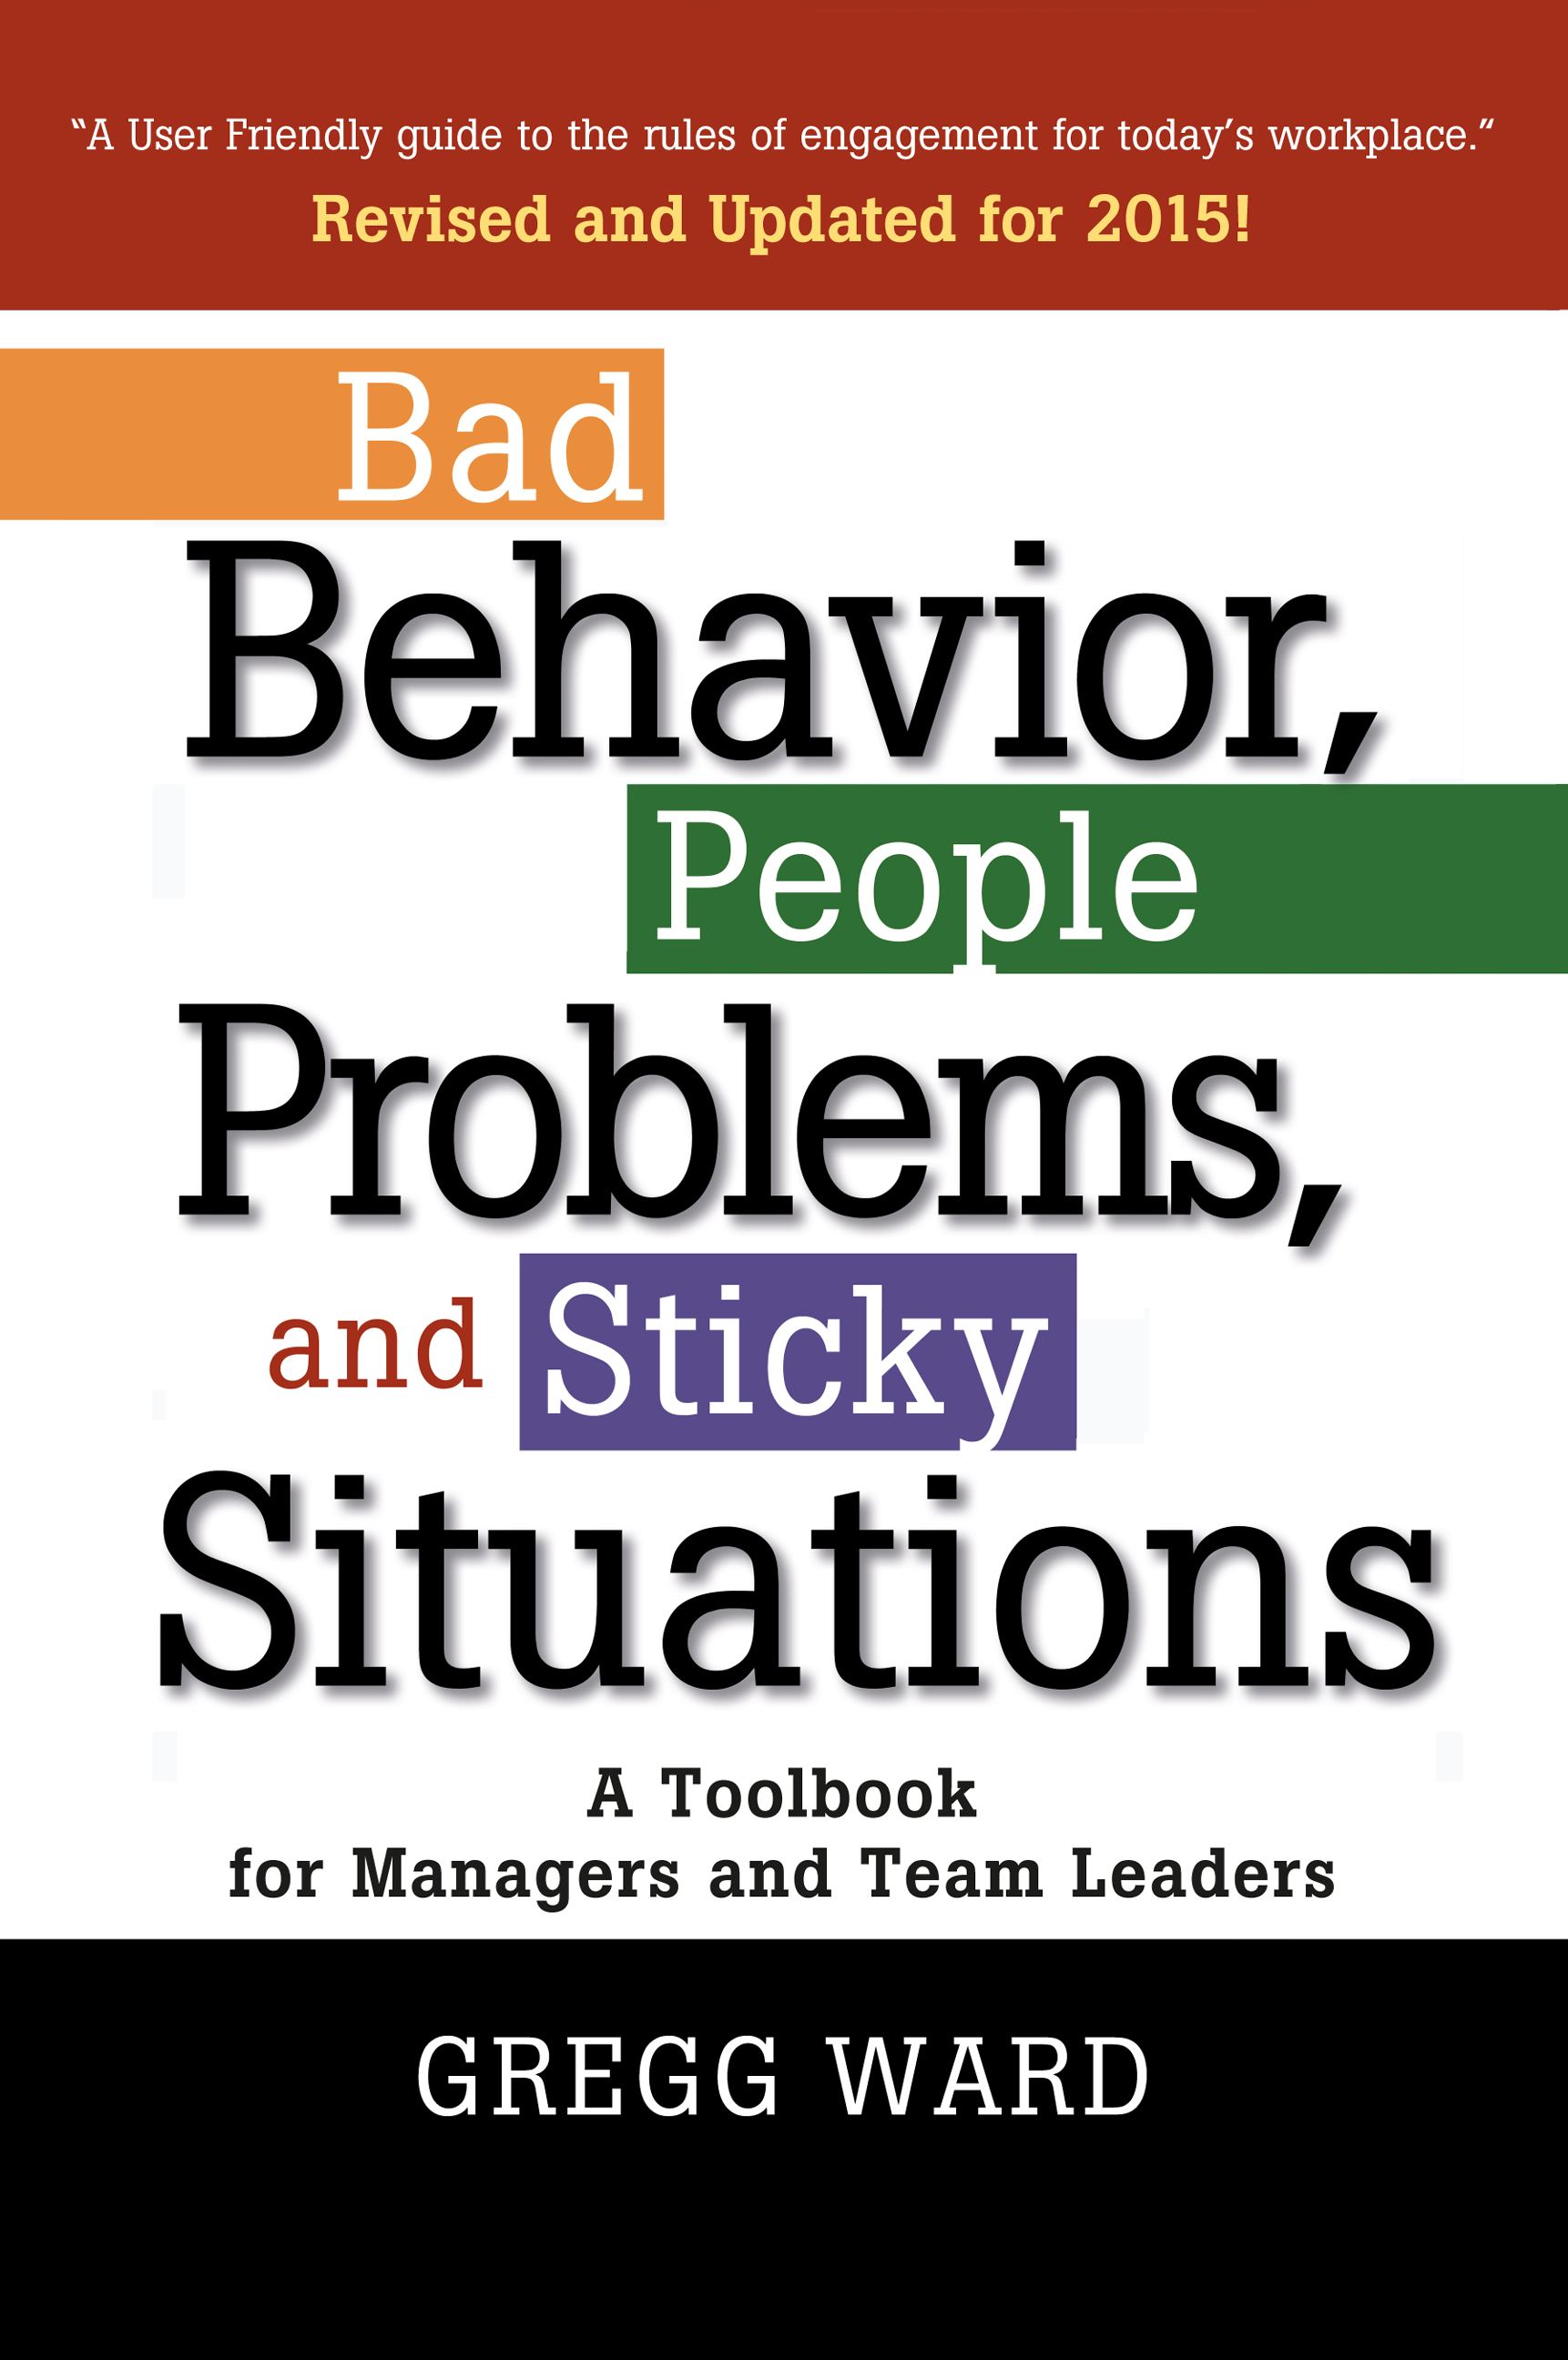 Bad Behavior, People Problems, and Sticky Situations